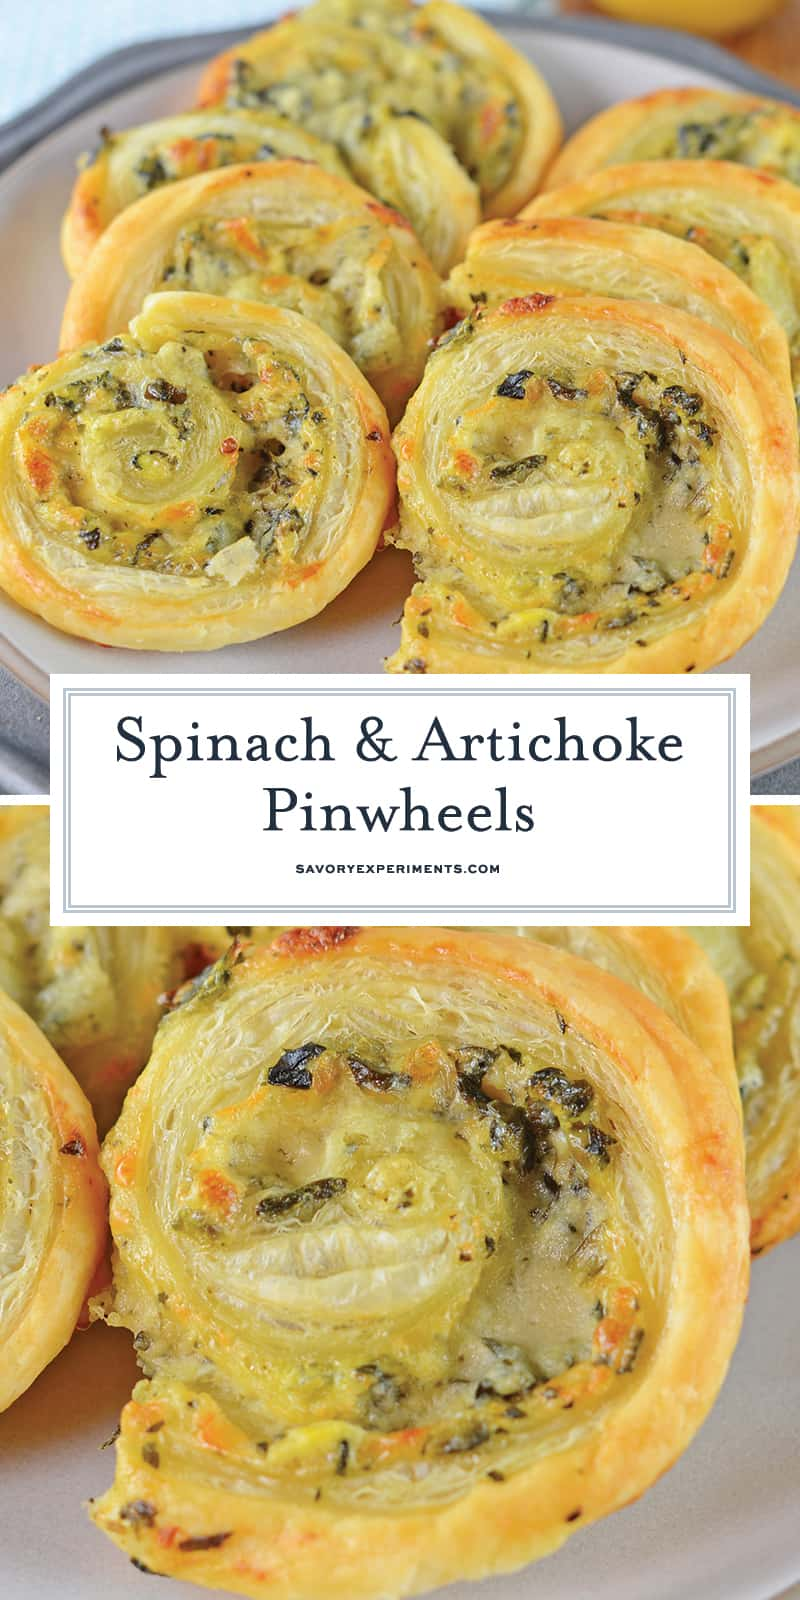 Spinach and Artichoke Pinwheels are an easy party appetizer that everyone will love! It's a Creamy dip rolled in buttery pastry and baked until crispy! #pinwheelrecipes #pinwheelappetizers #puffpastryappetizers www.savoryexperiments.com